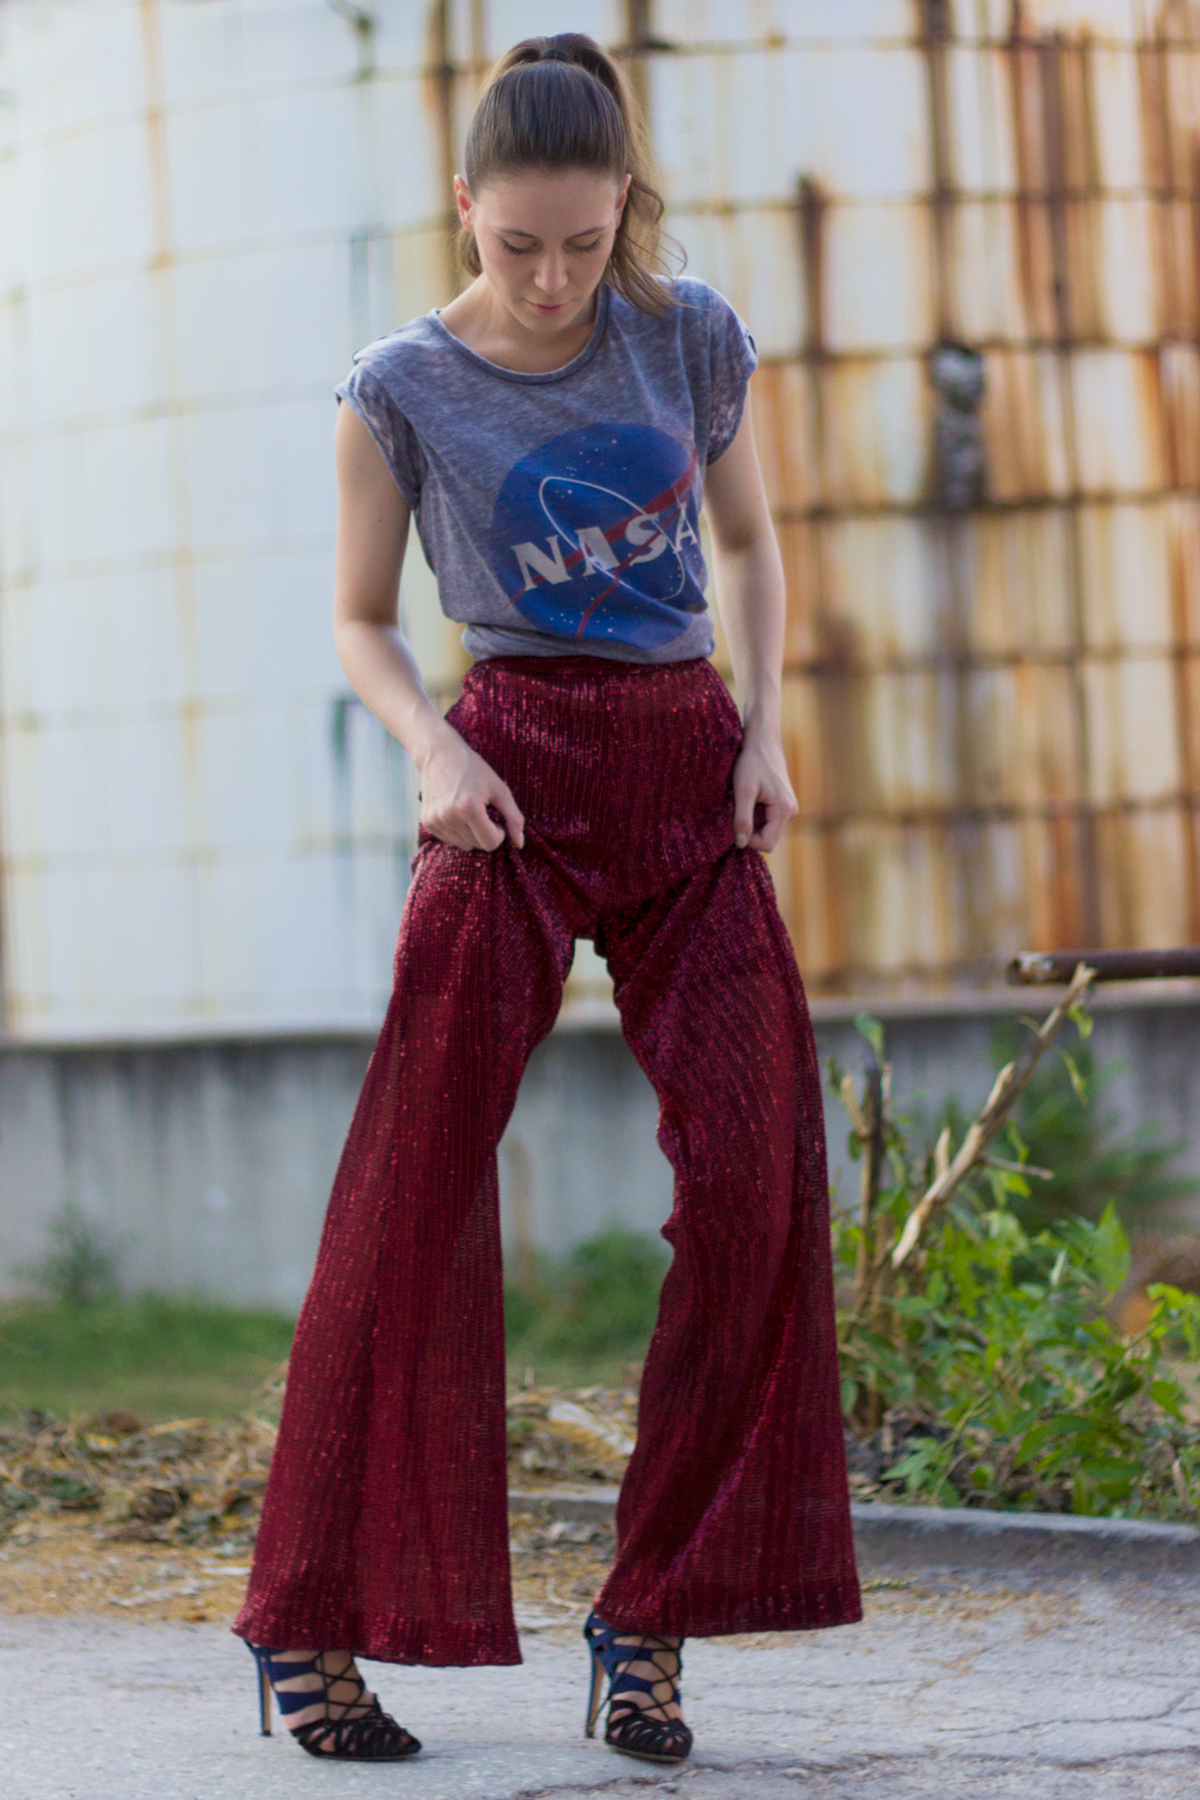 Mermaid Pants by Mila Kadriu on AfterTwoFive.com